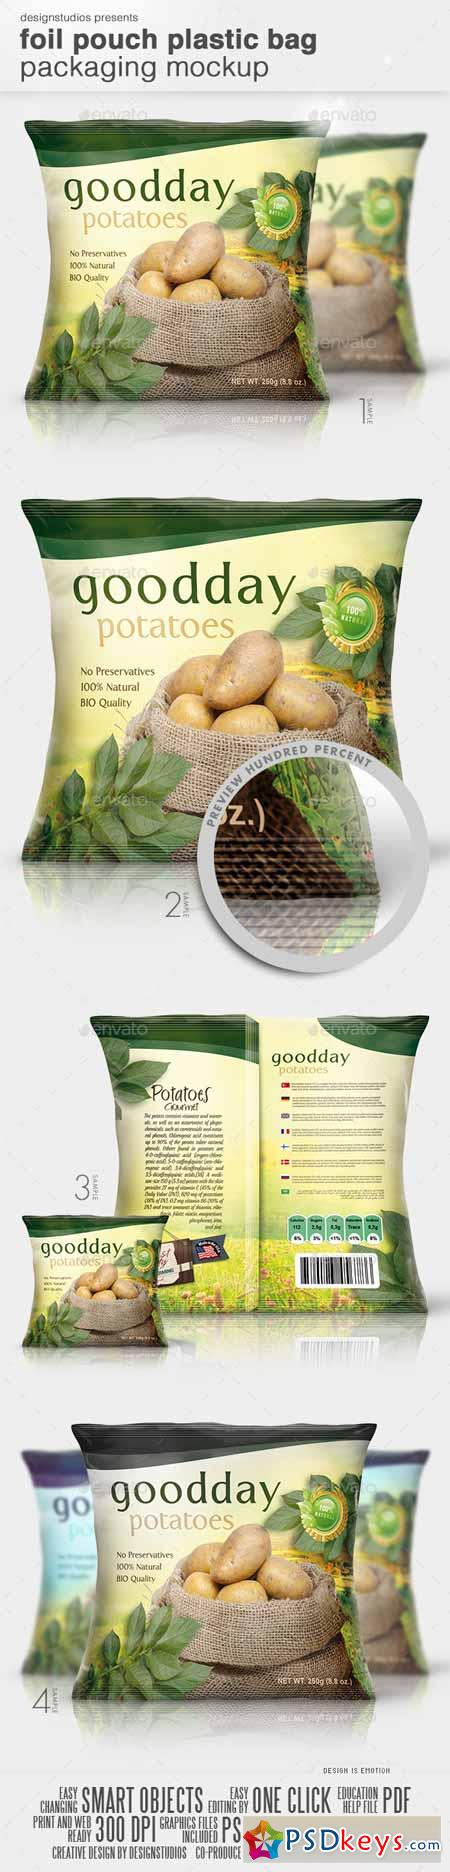 Foil Pouch Plastic Bag Packaging Mock-Up 10545171